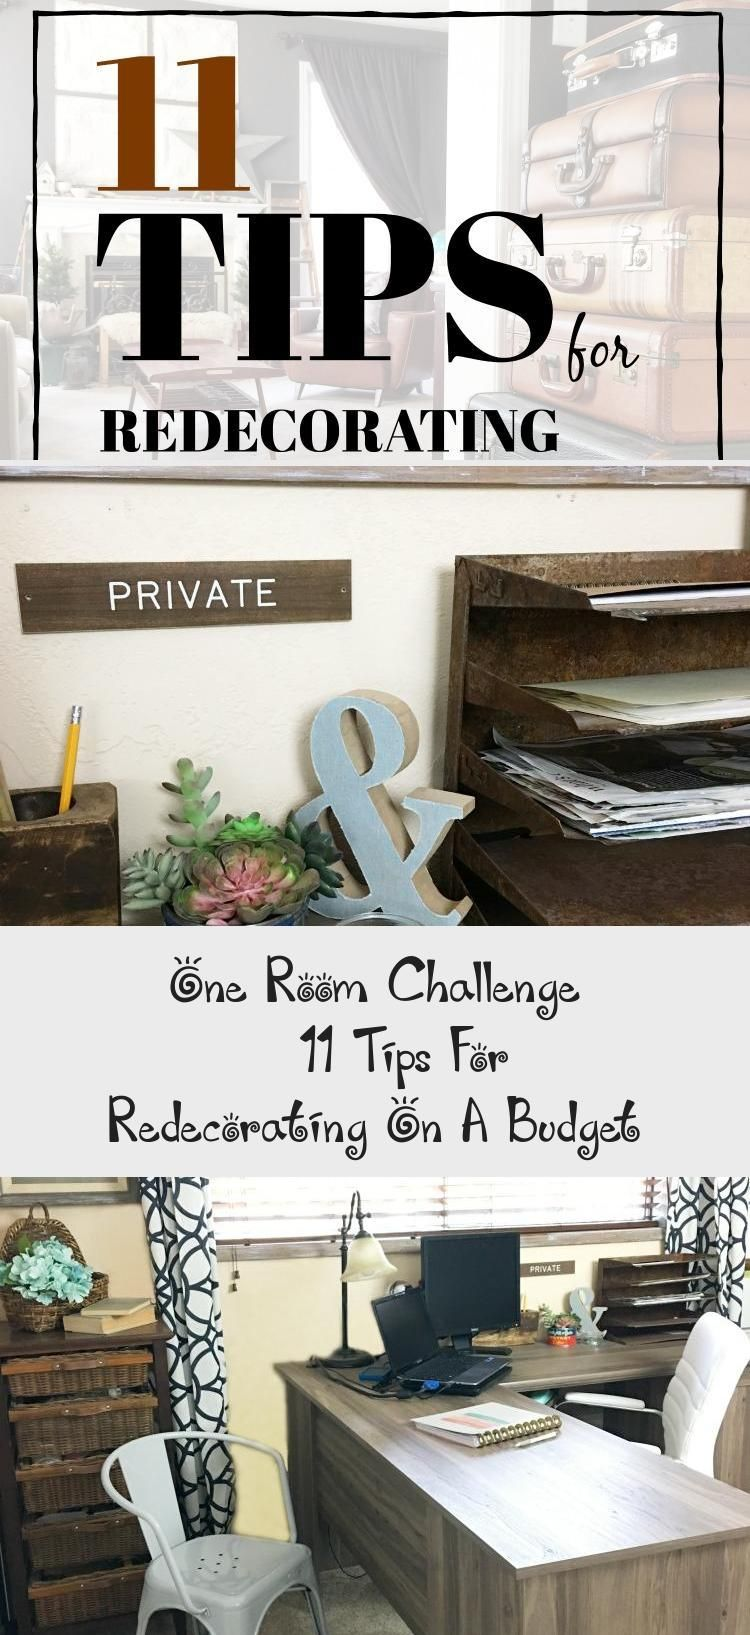 How to redecorate on a budget.  Here are some tips.  Find more on salvagesisterandmister.com #HomeDecorDIYVideosBedroom #HomeDecorDIYVideosIdeas #HomeDecorDIYVideosOnABudget #HomeDecorDIYVideosCheap #HomeDecorDIYVideosApartment